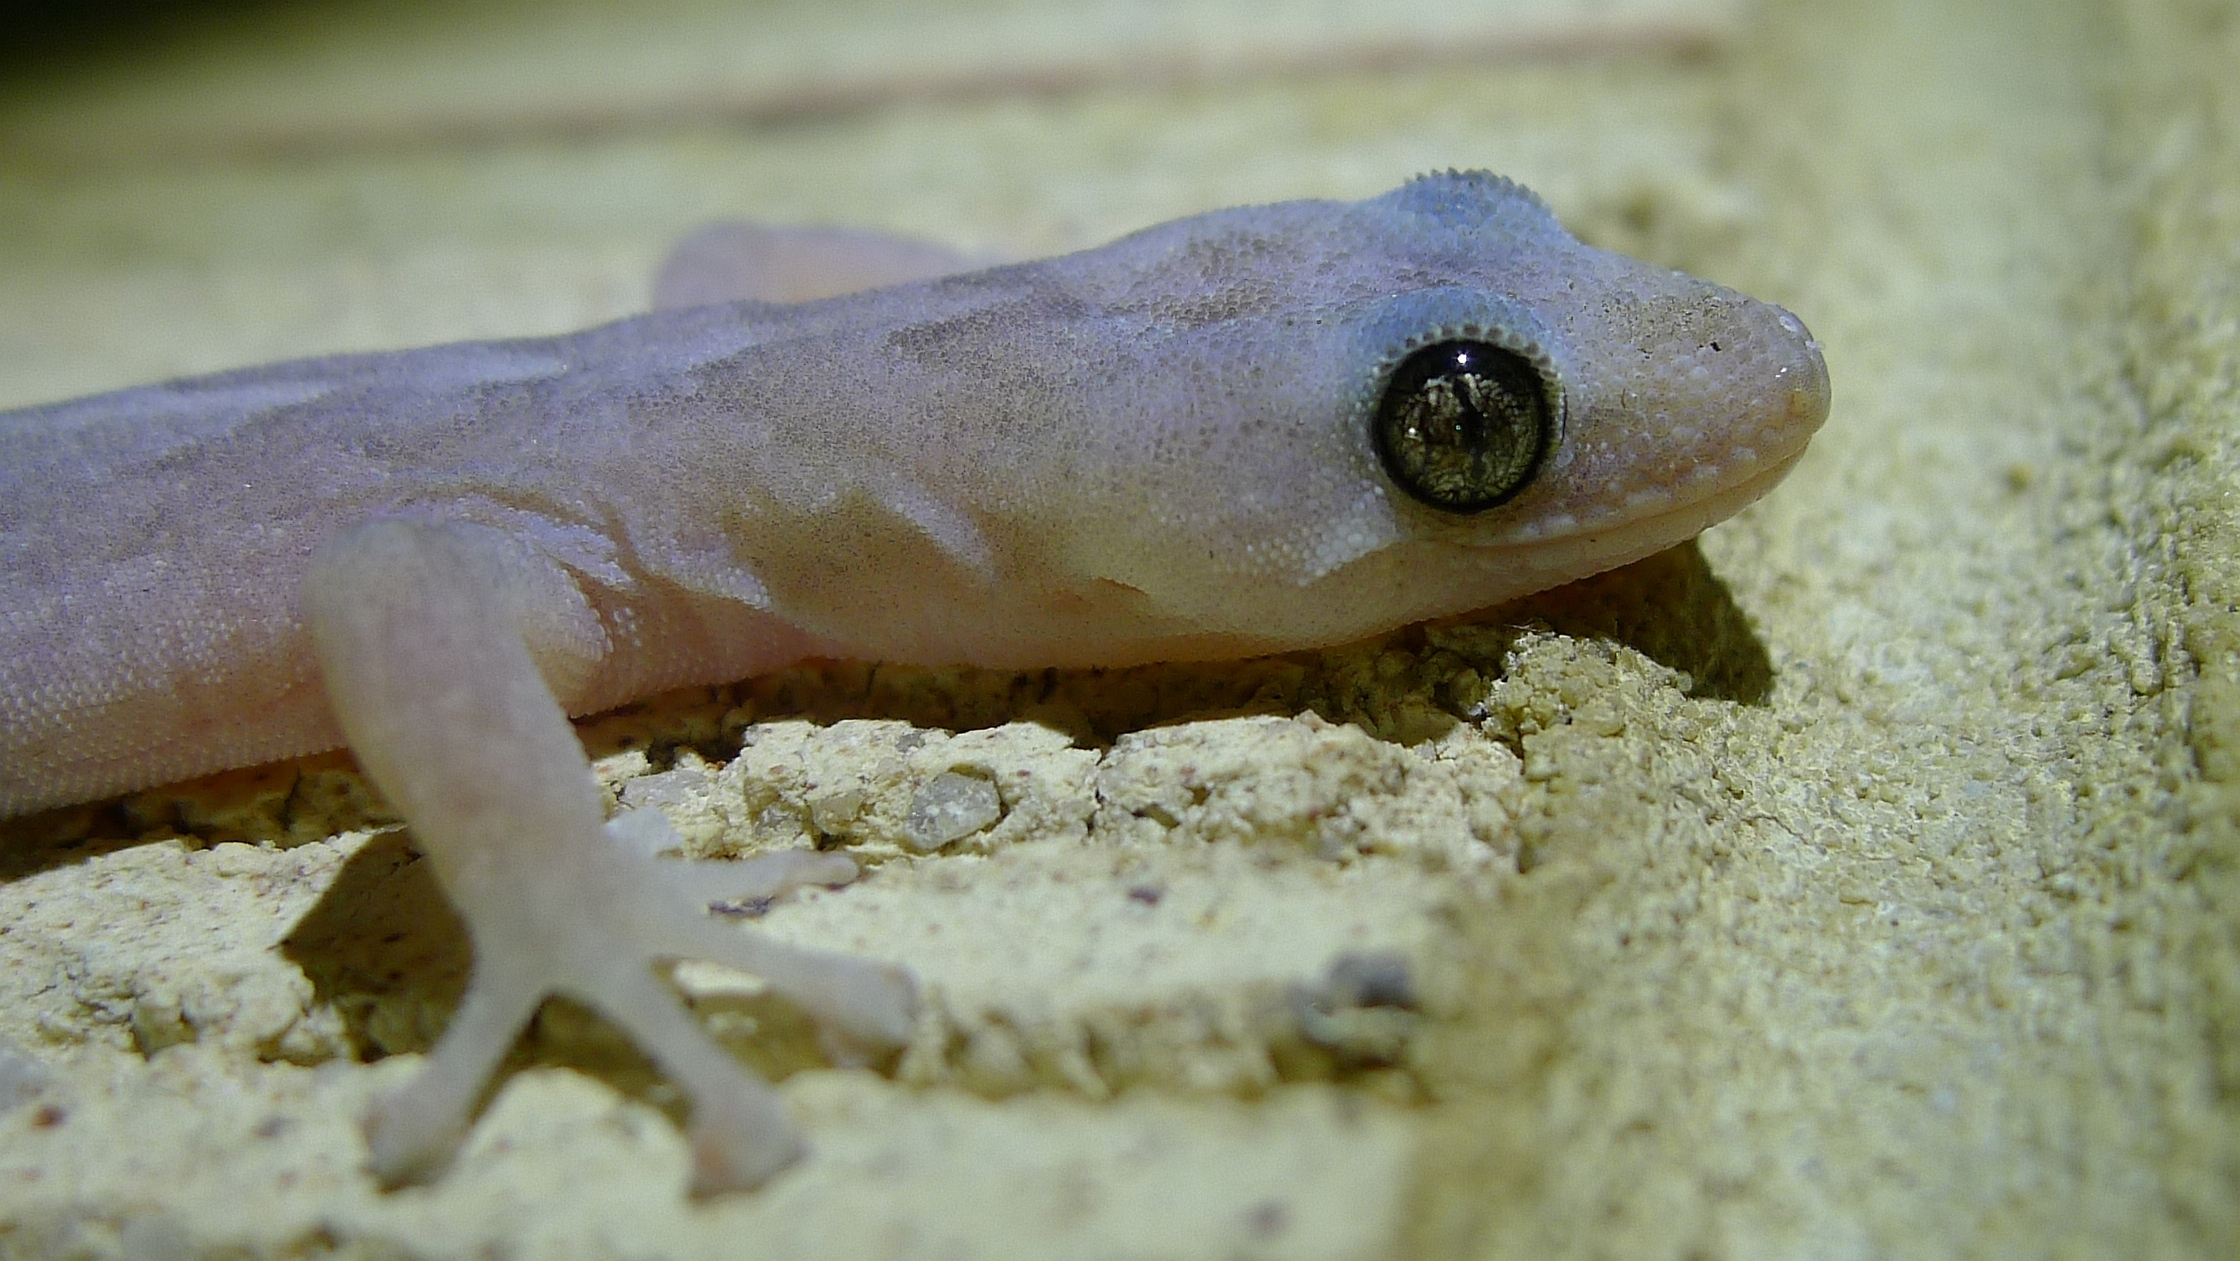 Image of Marbled gecko